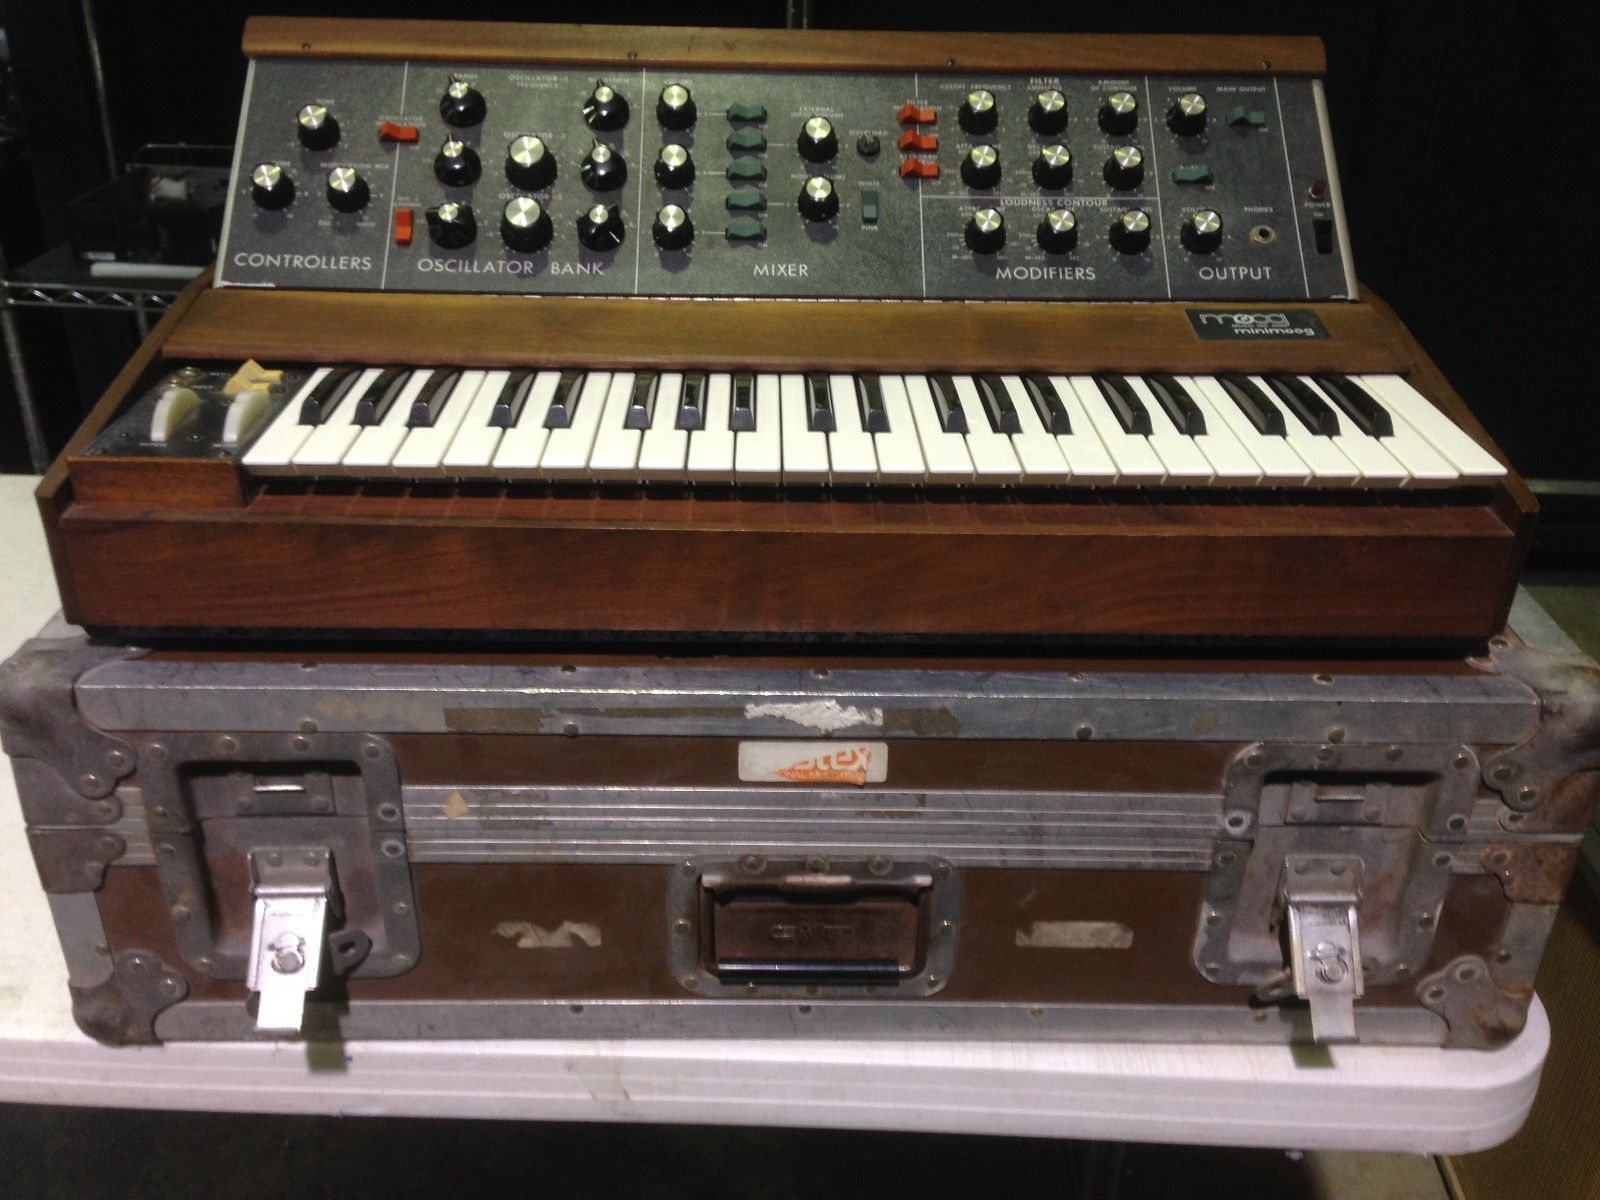 Matrixsynth Wednesday November 18 2015 Xfmr Diy Projects Didn39t You Used To Circuitbend Here Is A Beautiful Moog Model D Minimoog From 1972 The Serial Number 1735 Making It 735th Made Im Second Owner And I Bought